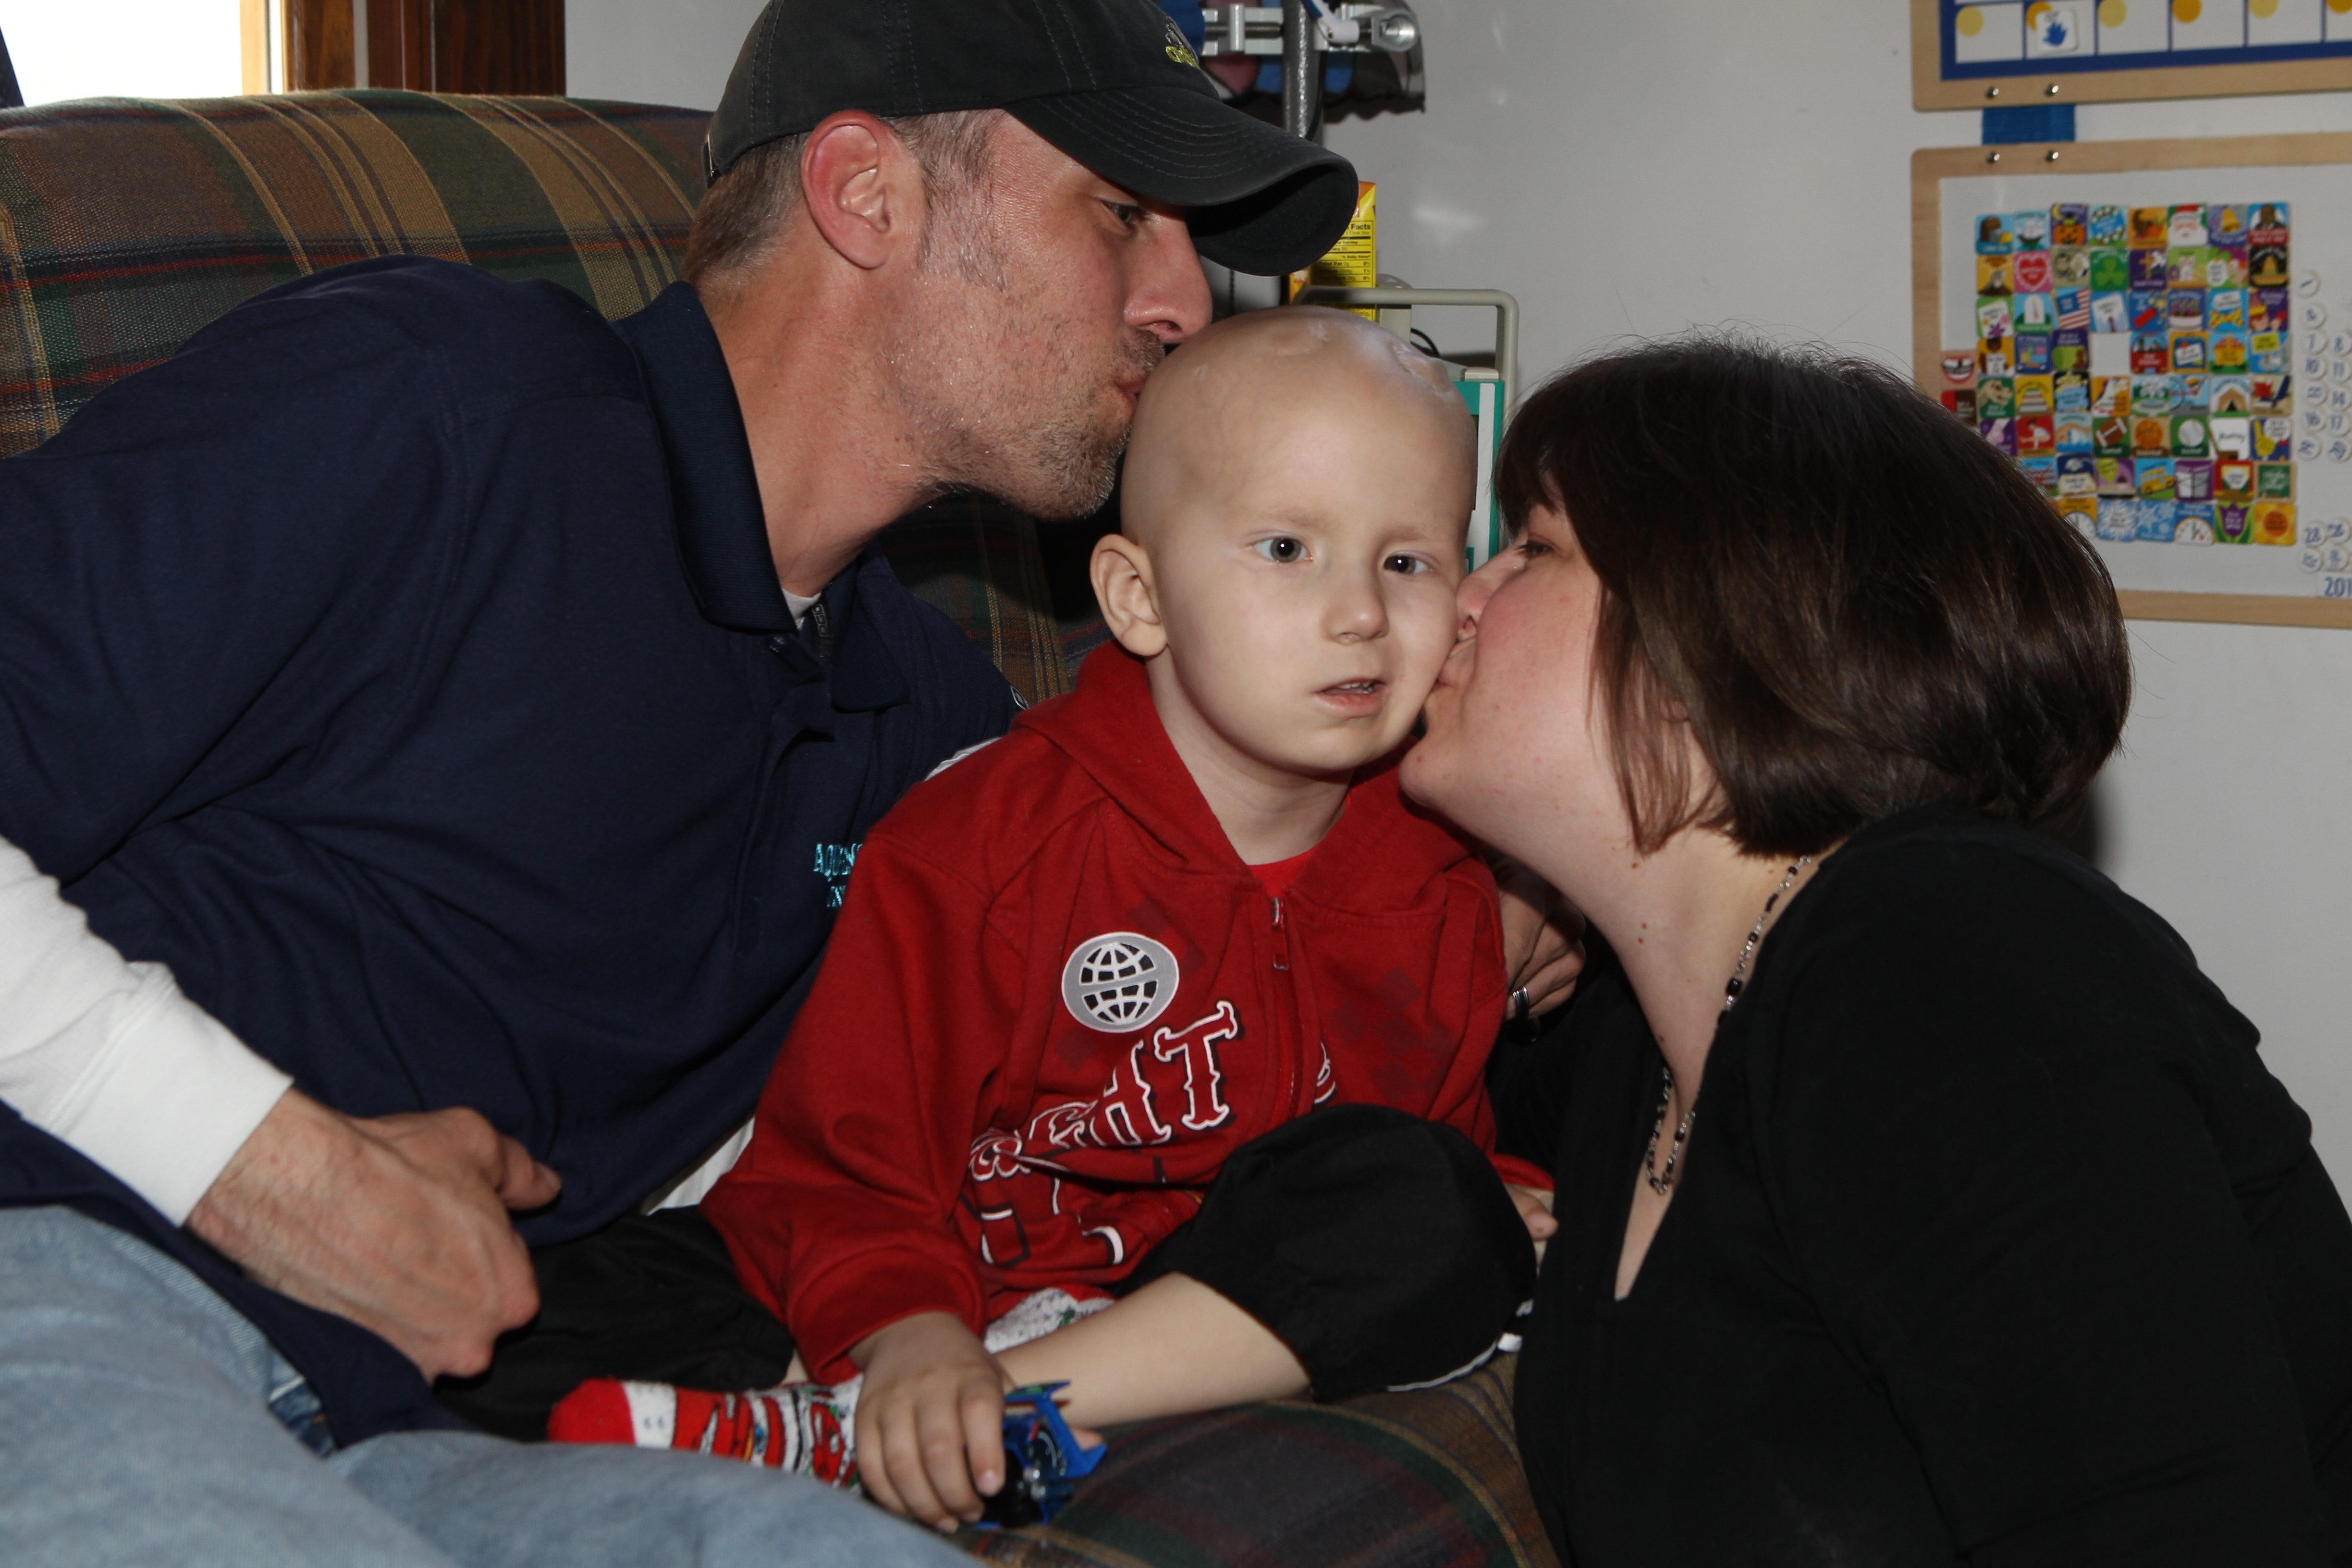 Tom and Jill Bojarski share a kiss with their son Jackson at their West Seneca home. The family is hoping Jackson will be well enough to travel to California next year for a special visit to Cars Land.